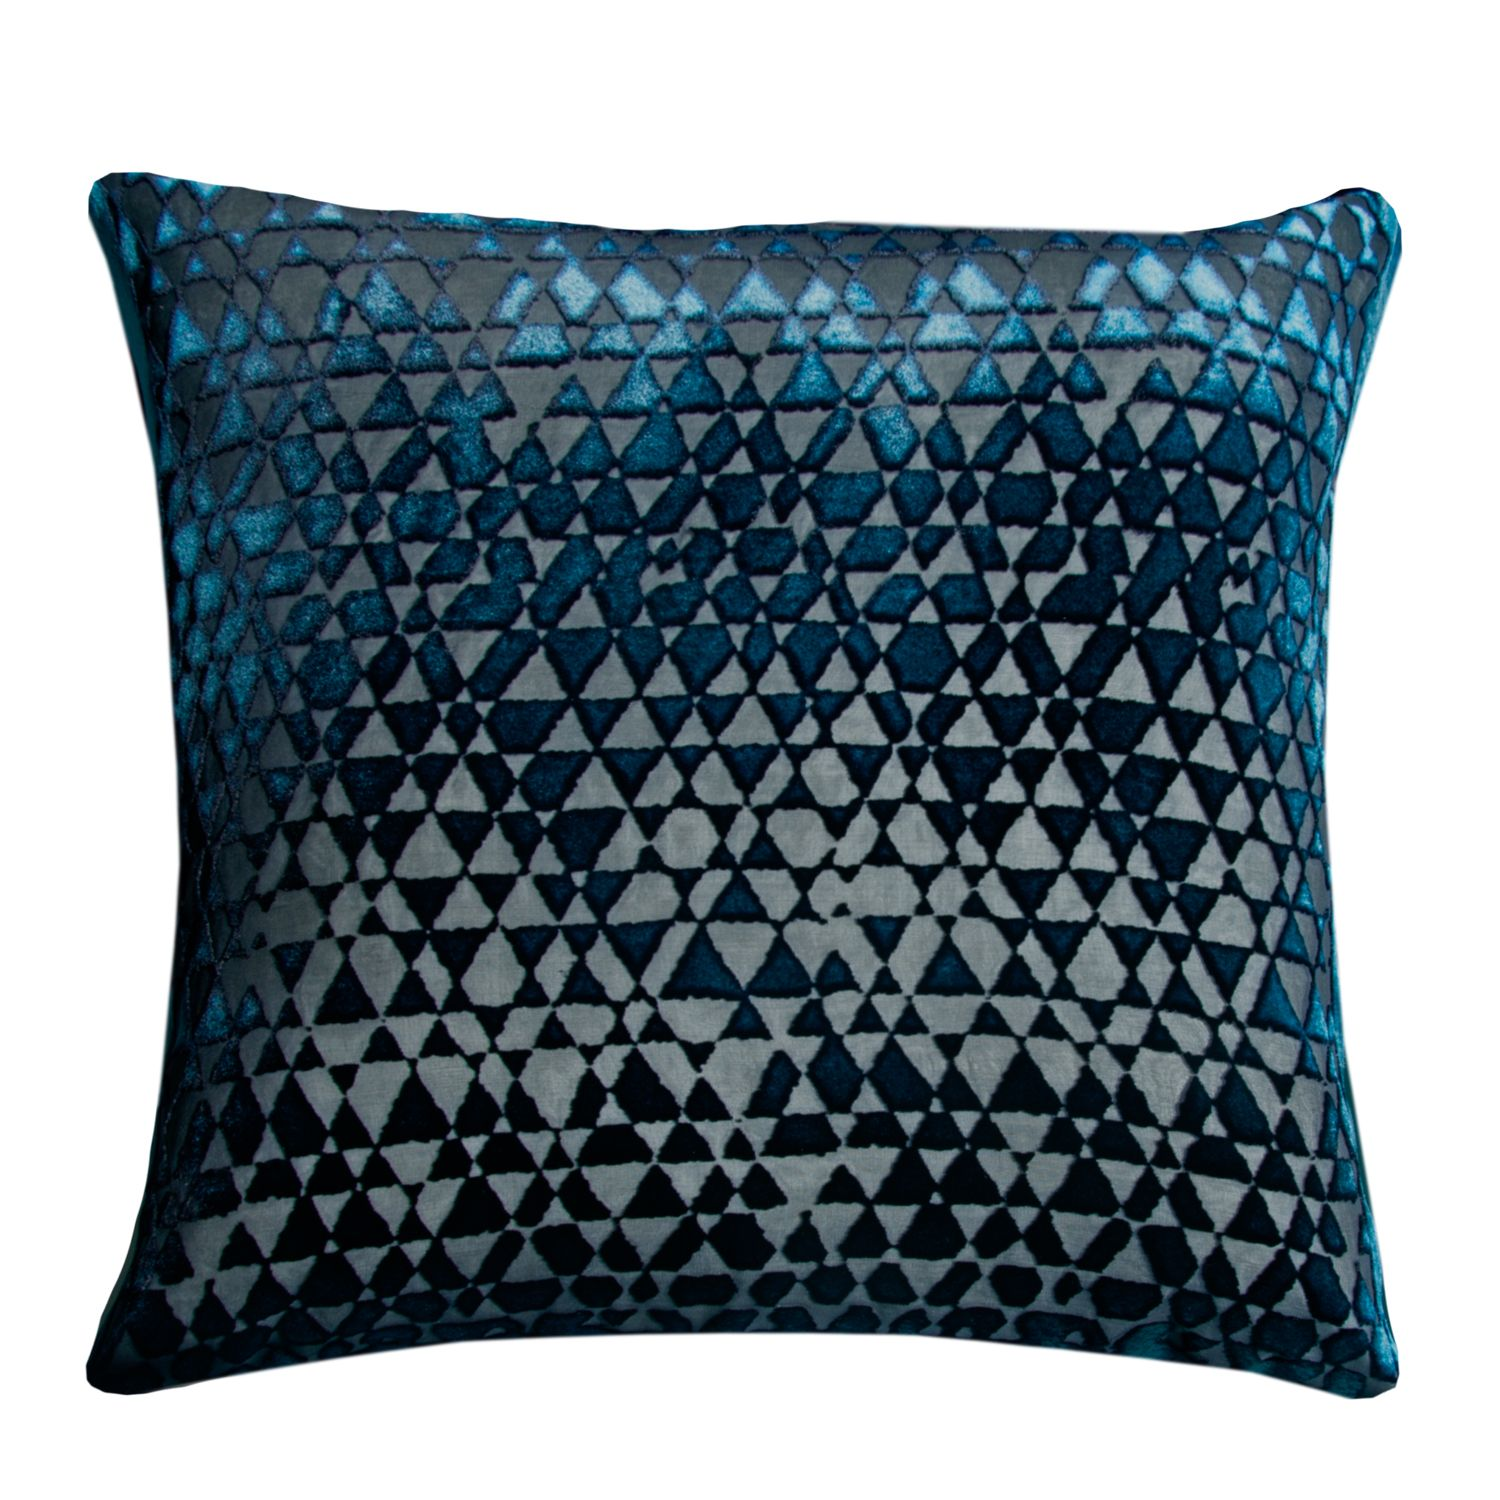 Kevin Obrien Studio Triangles Velvet Decorative Pillow